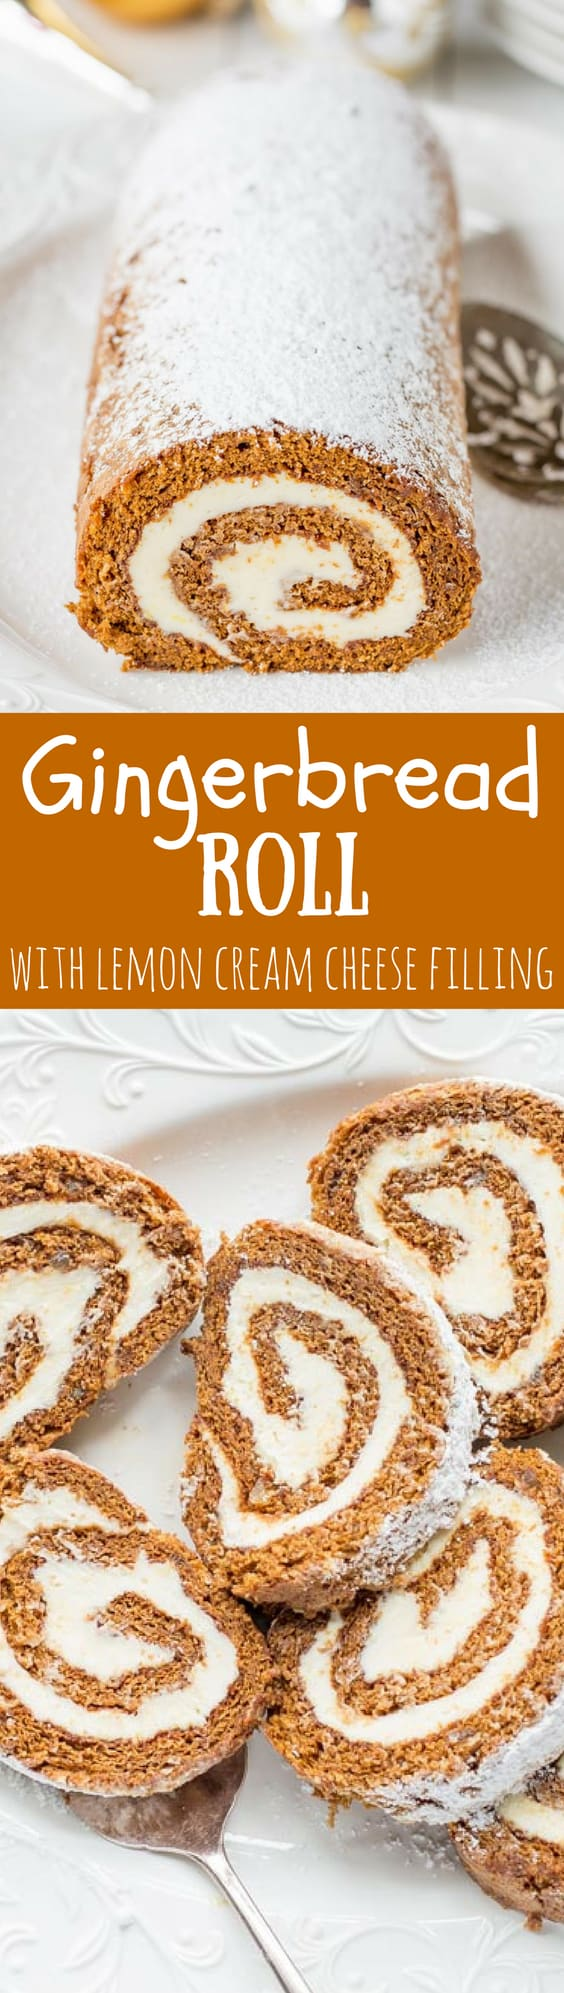 Gingerbread Roll with Lemon Cream Cheese Filling – a delightful dessert that's not too sweet, is loaded with warm, aromatic spices and flavored with just the right amount of molasses. www.savingdessert.com